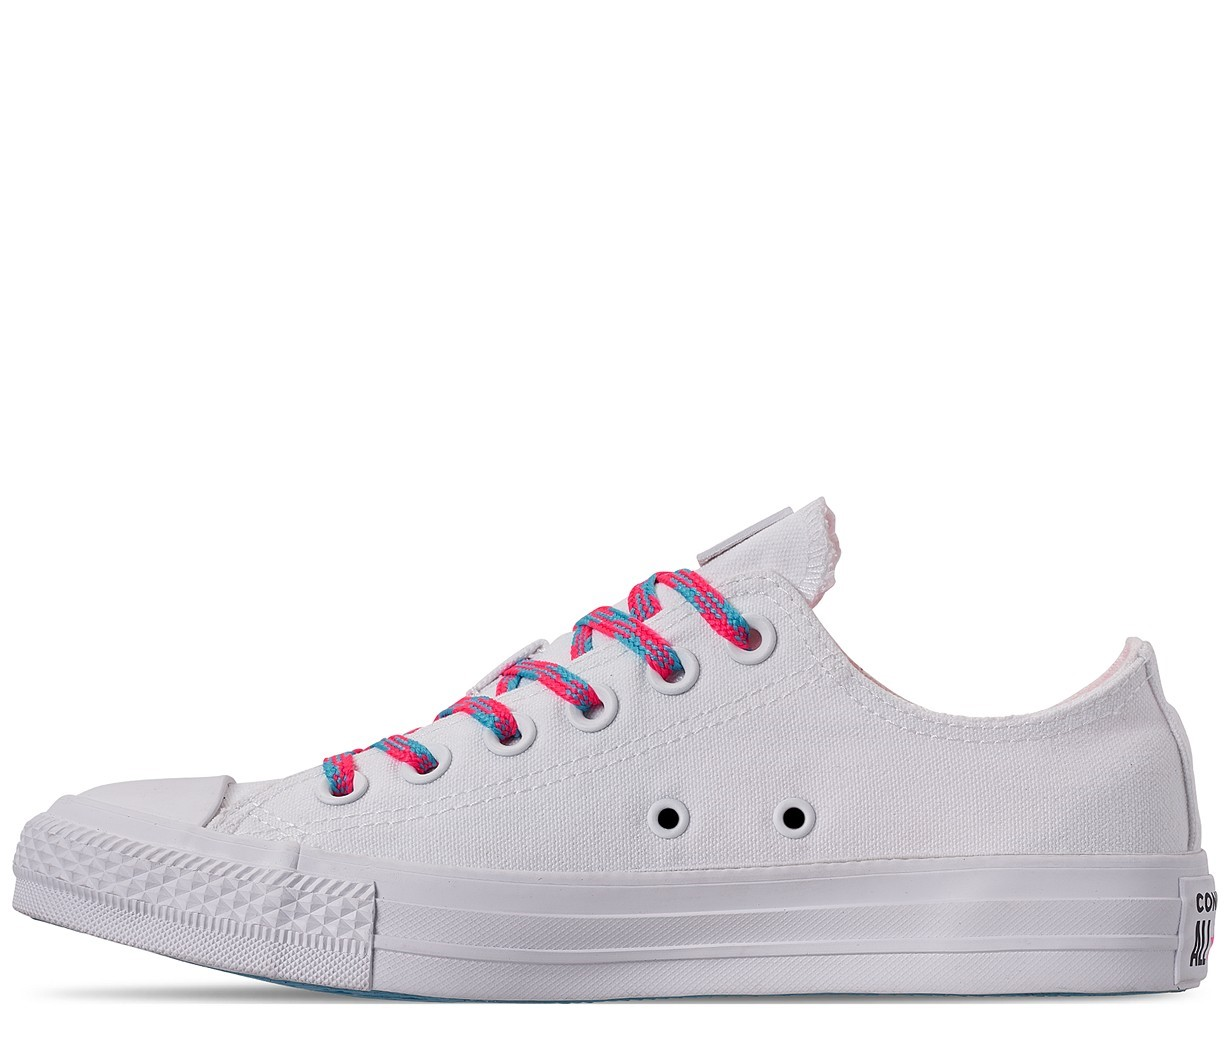 Converse bílé tenisky Chuck Taylor All Star OX White/Race Pink/Gnarly Blue